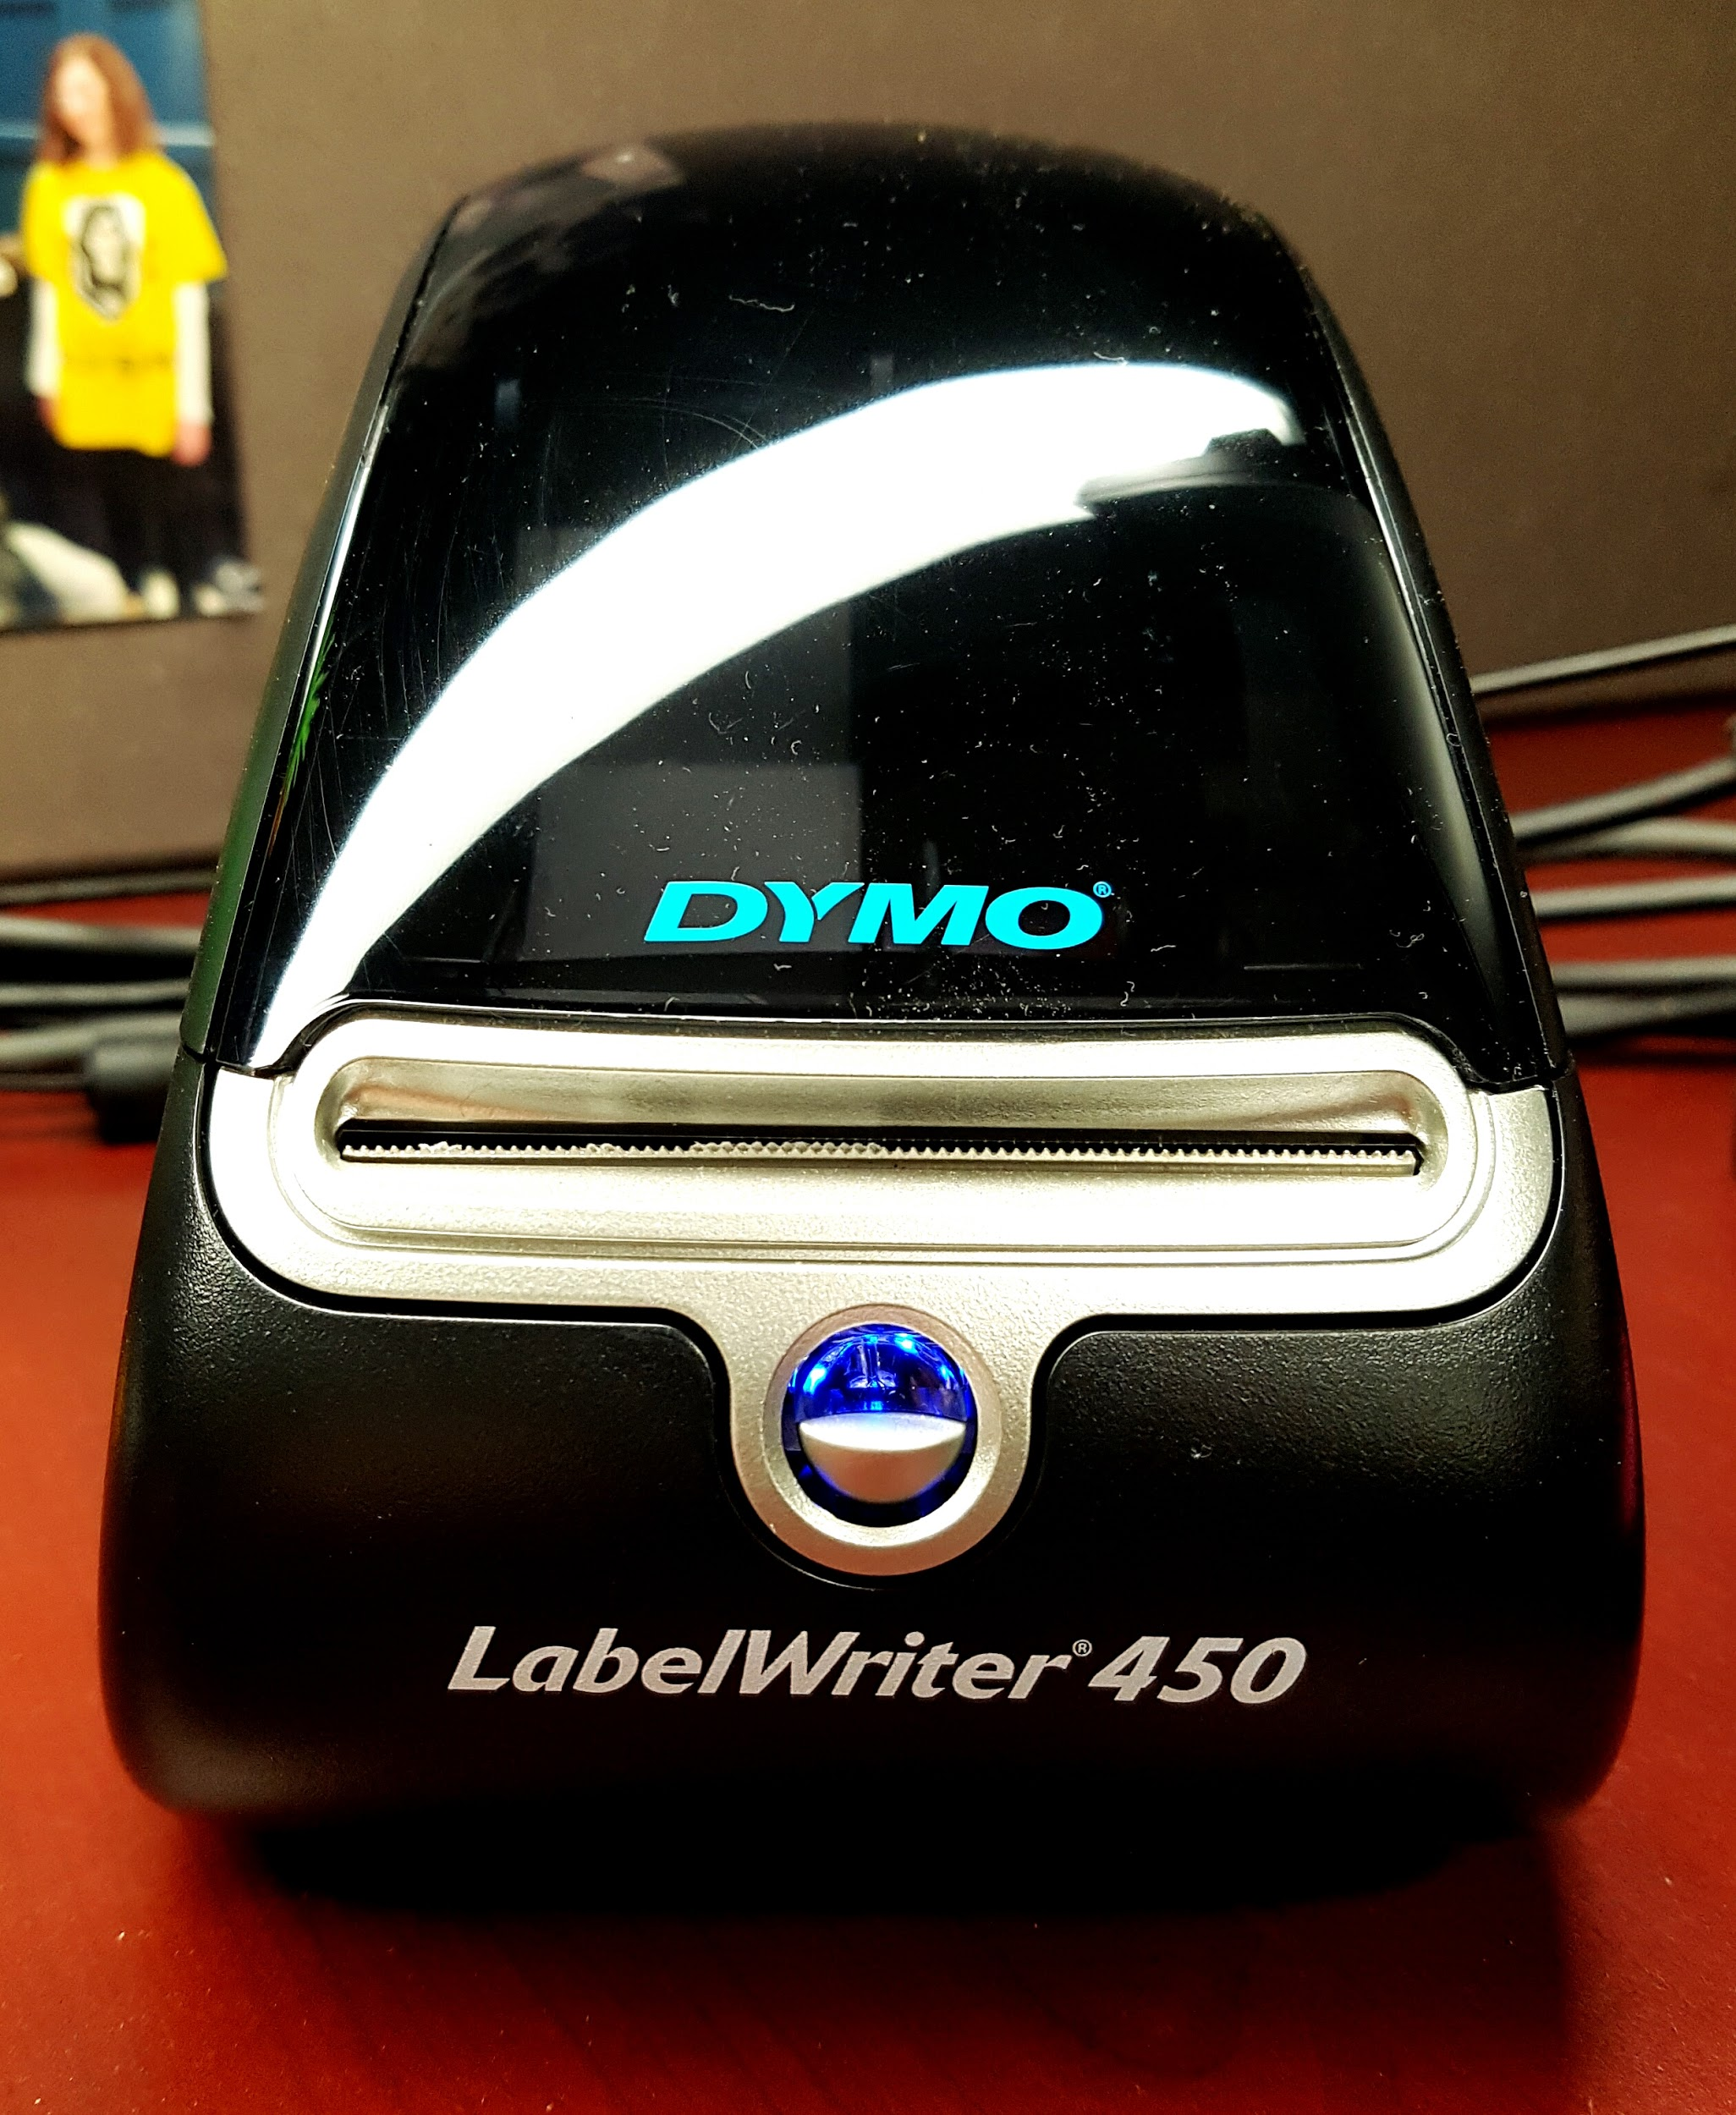 Sponsored Post: The DYMO® LabelWriter™ 450 Bundle From Staples